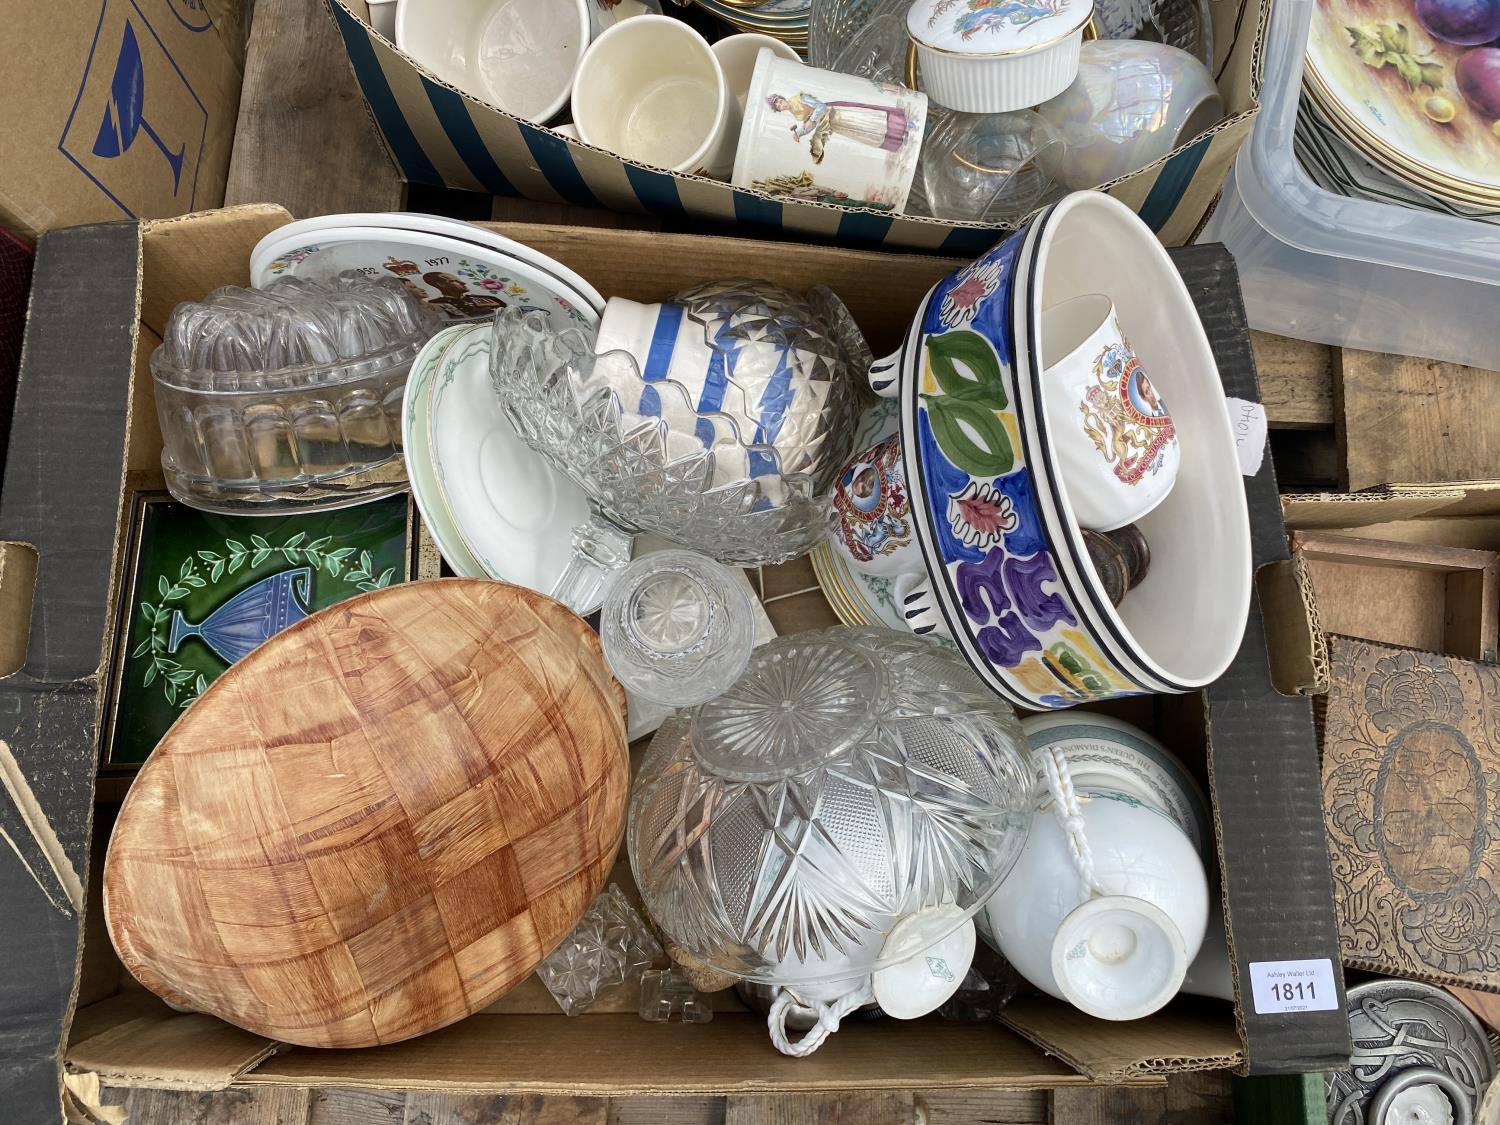 AN ASSORTMENT OF HOUSEHOLD CLEARANCE ITEMS TO INCLUDE CERAMICS, TREEN ITEMS AND GLASS WARE ETC - Image 3 of 6